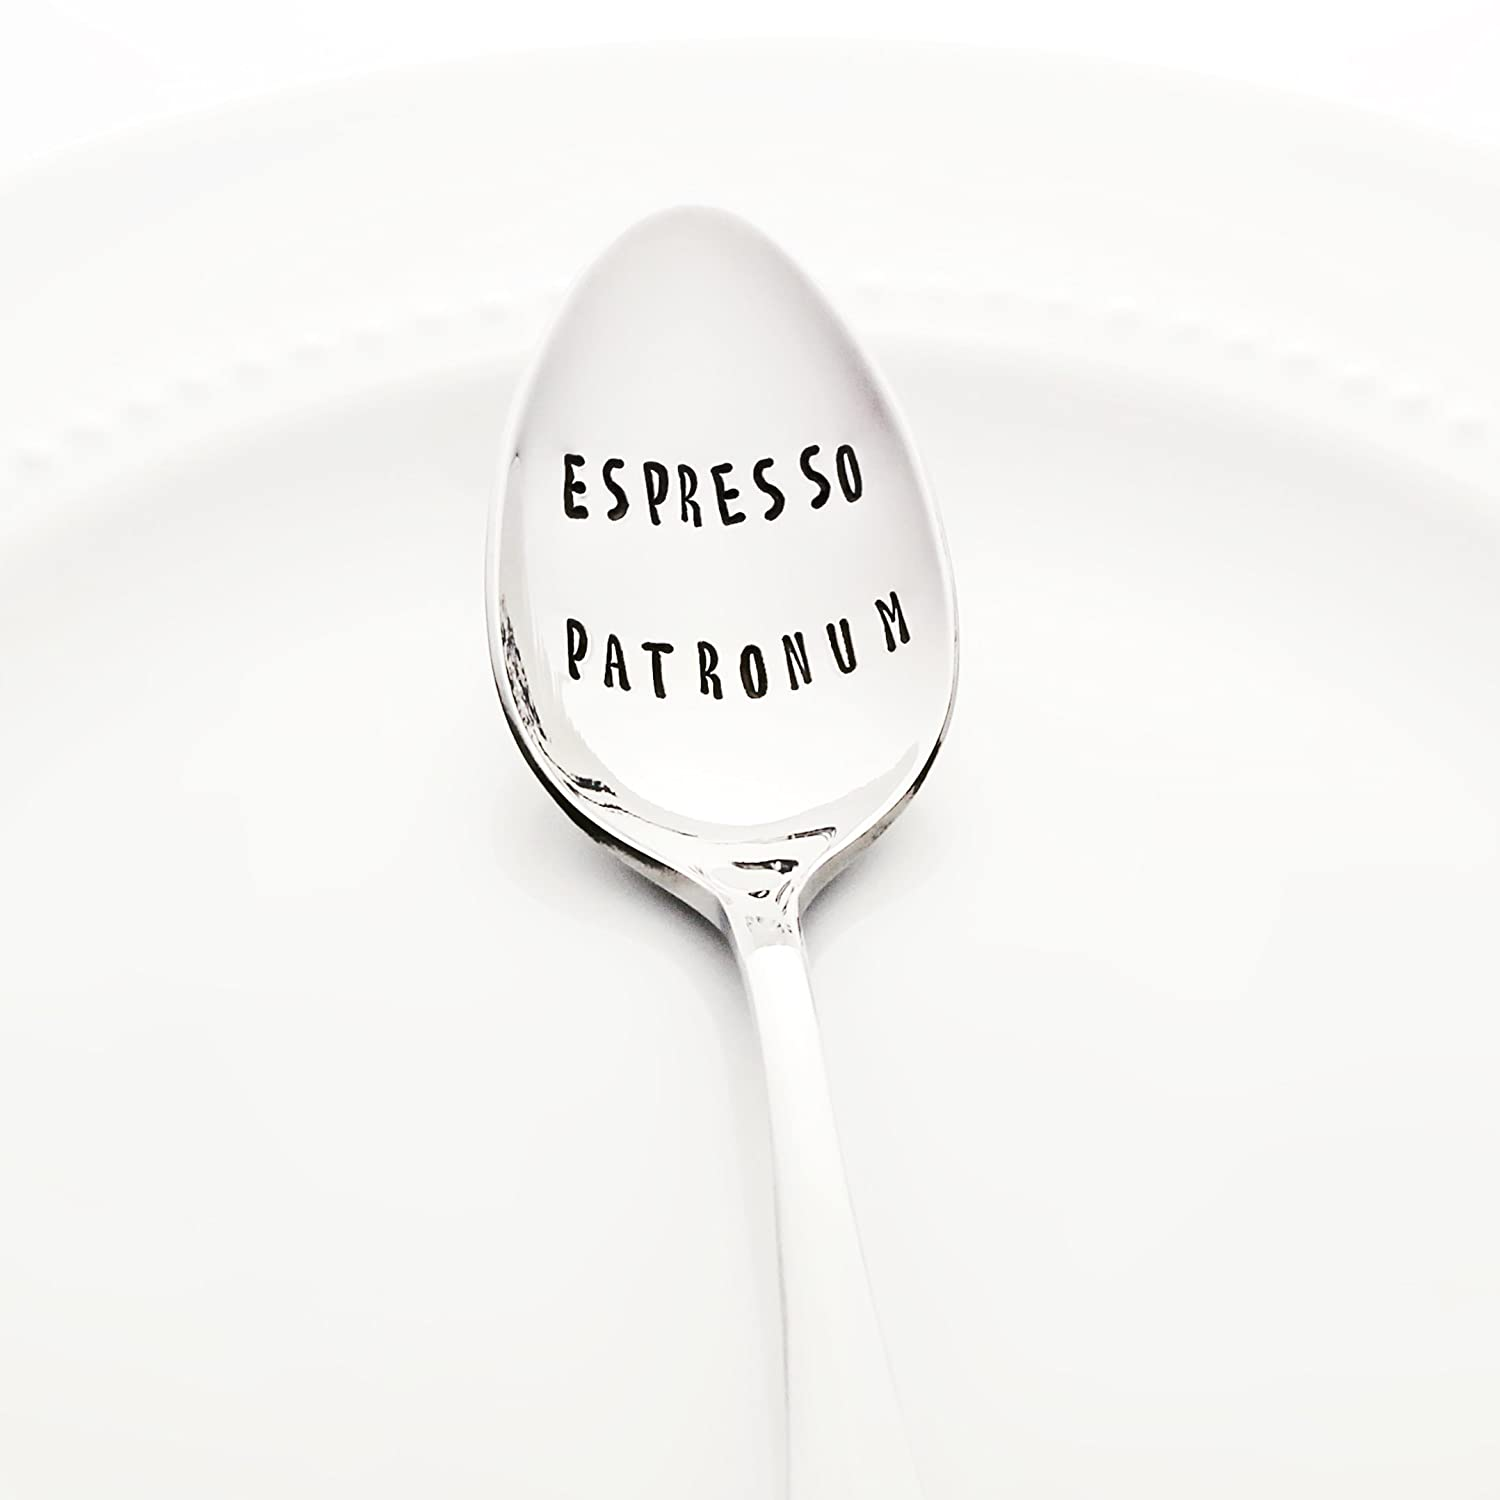 Espresso Patronum - Stainless Steel Stamped Spoon, Stamped Silverware - Gifts for Coffee Lovers - Unique Geek Gifts